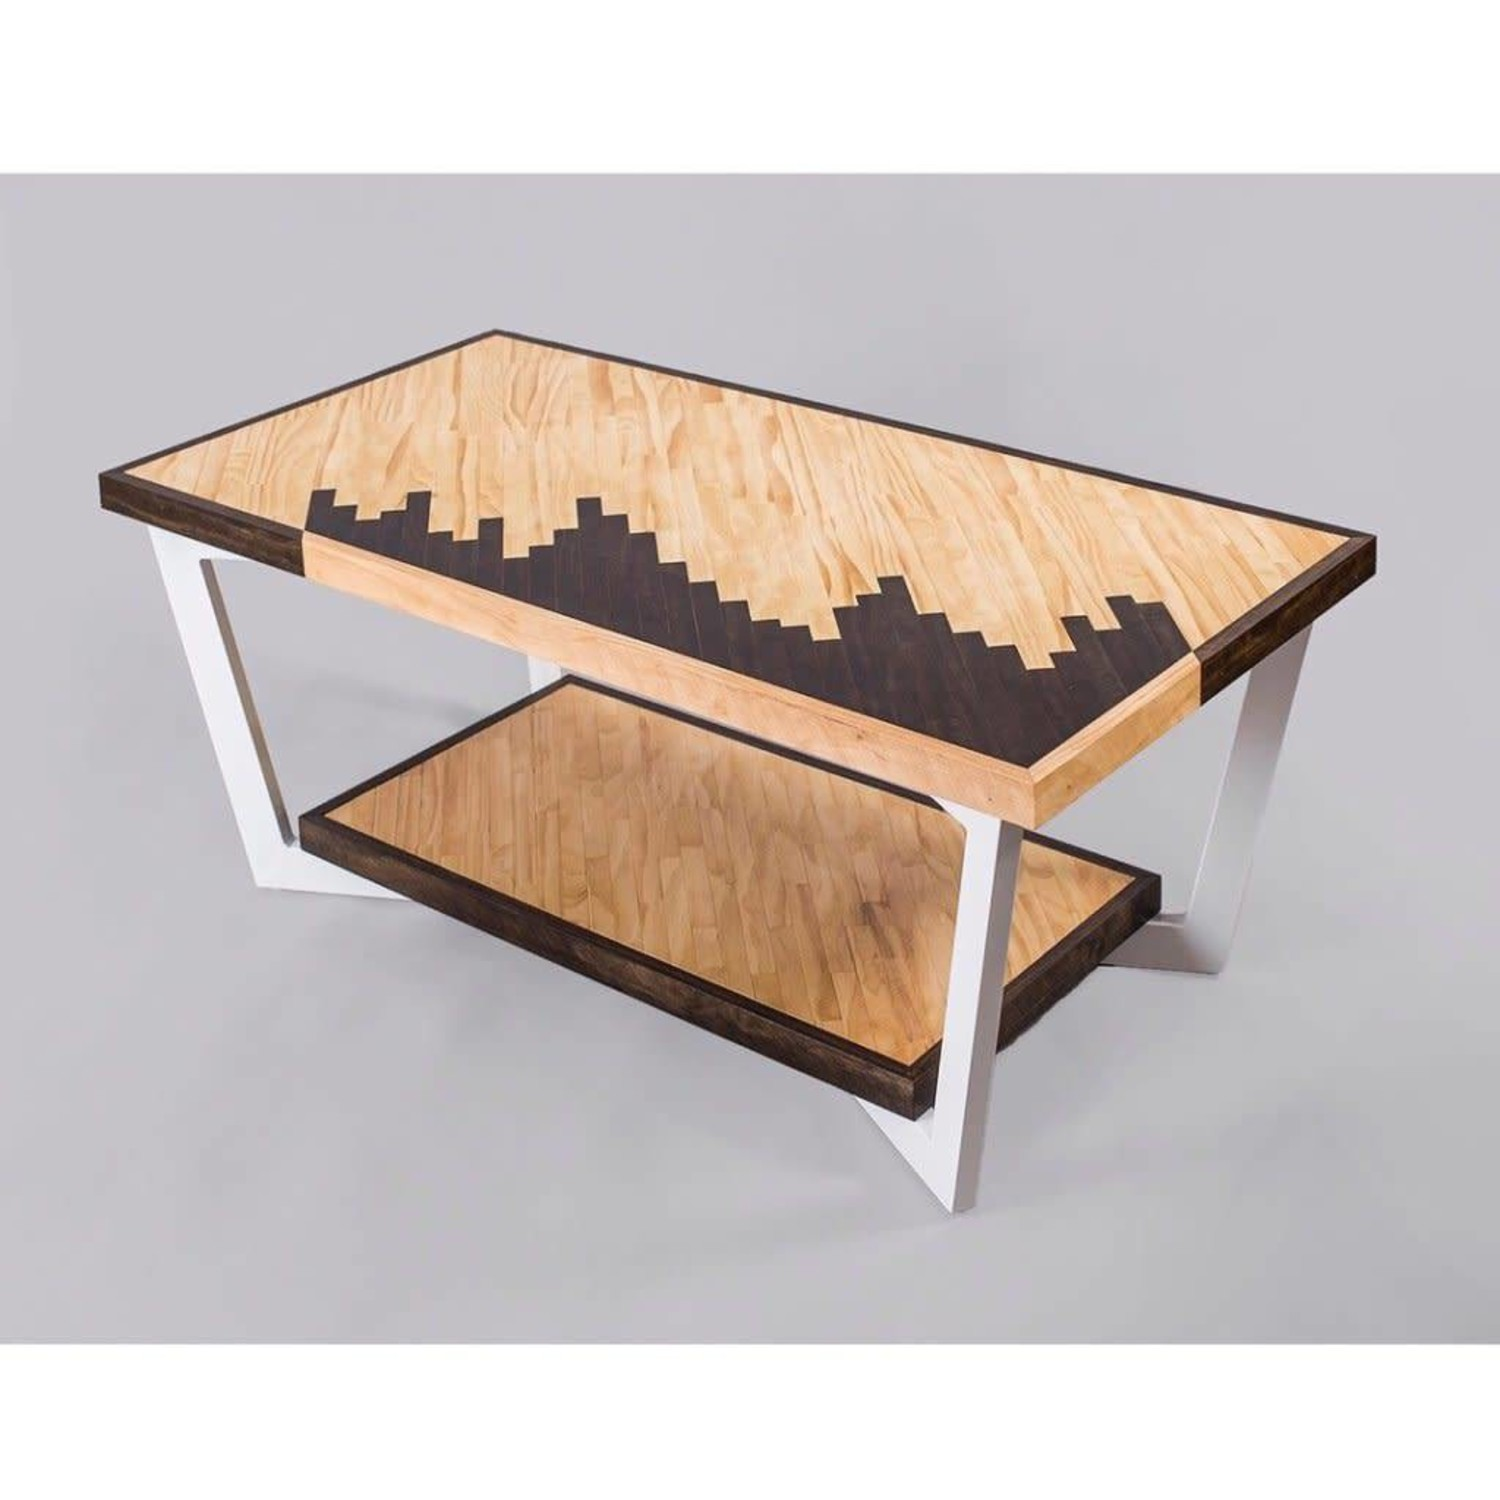 Wondrous Rustic Modern Coffee Table Style 3 Machost Co Dining Chair Design Ideas Machostcouk